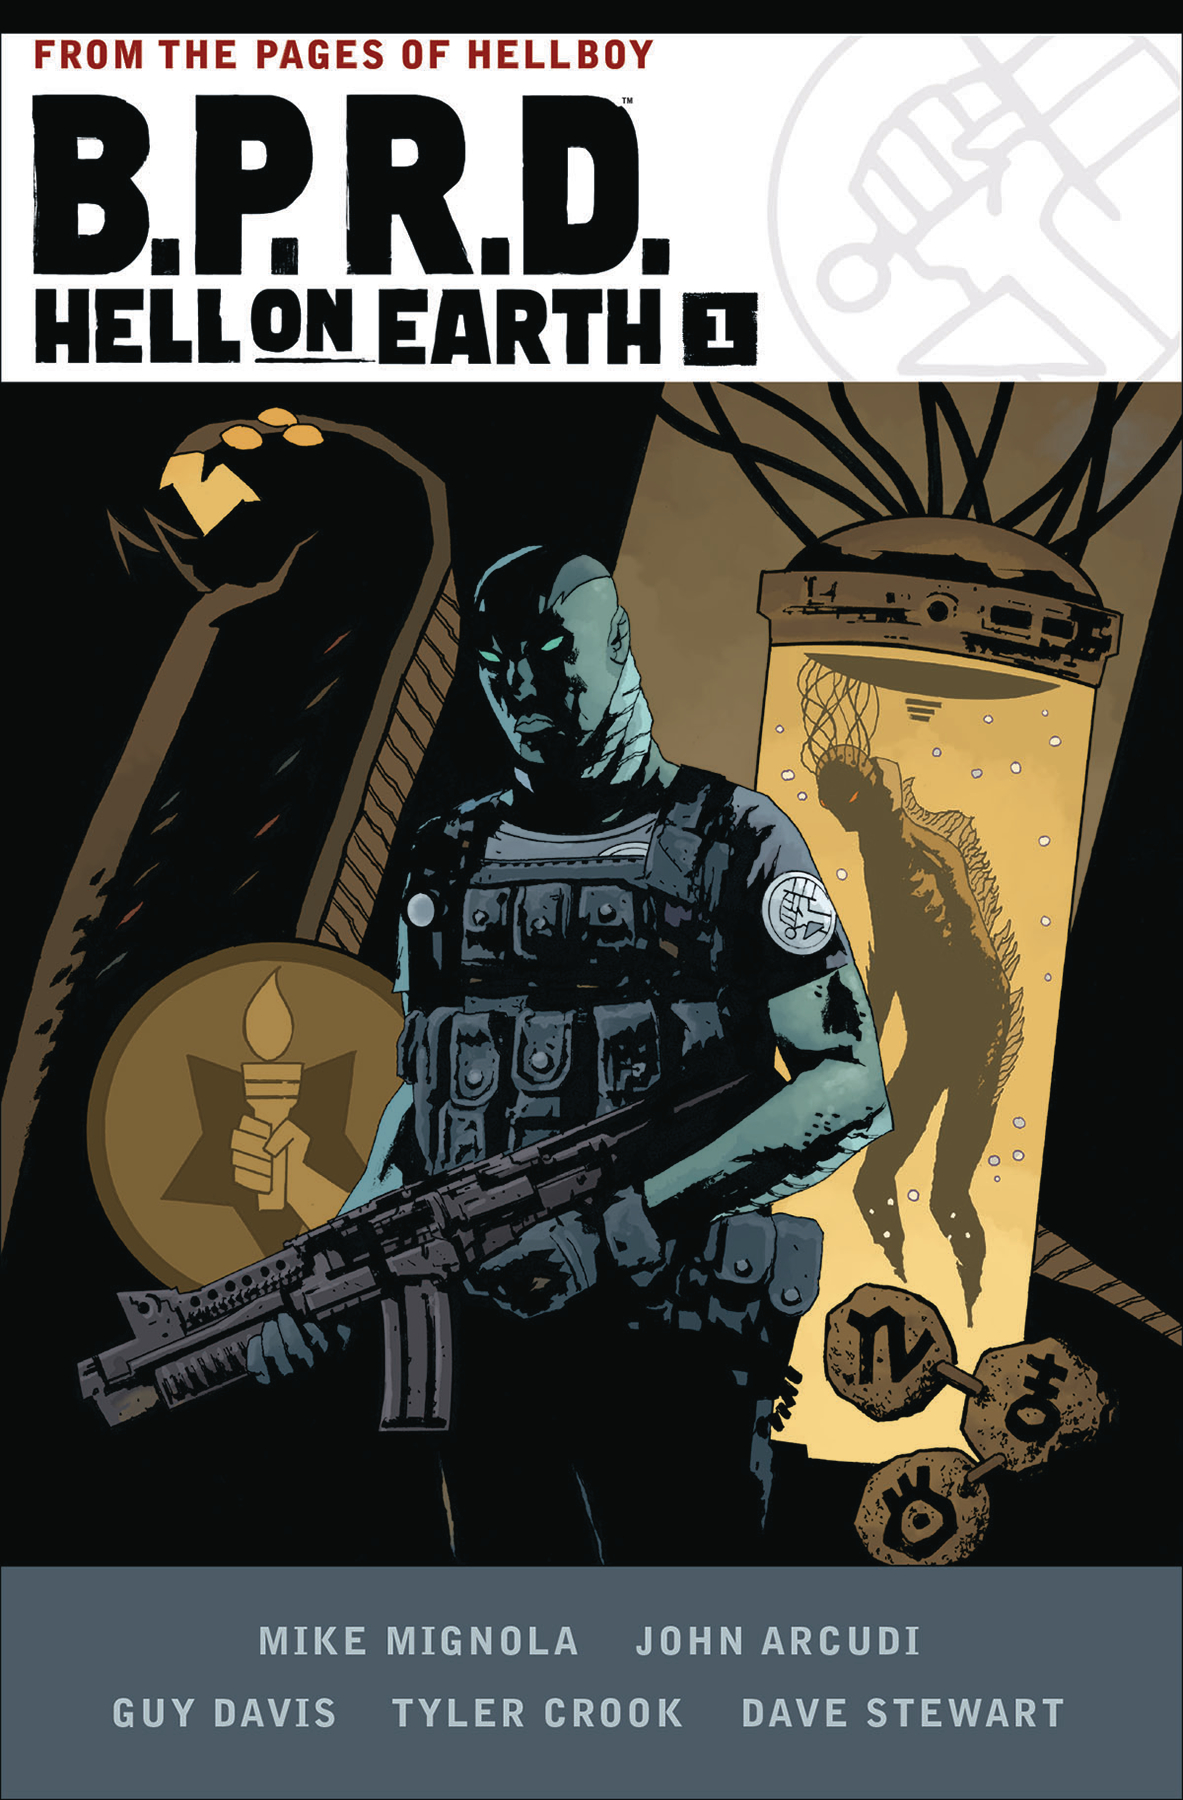 BPRD HELL ON EARTH HC VOL 01 (AUG170025)